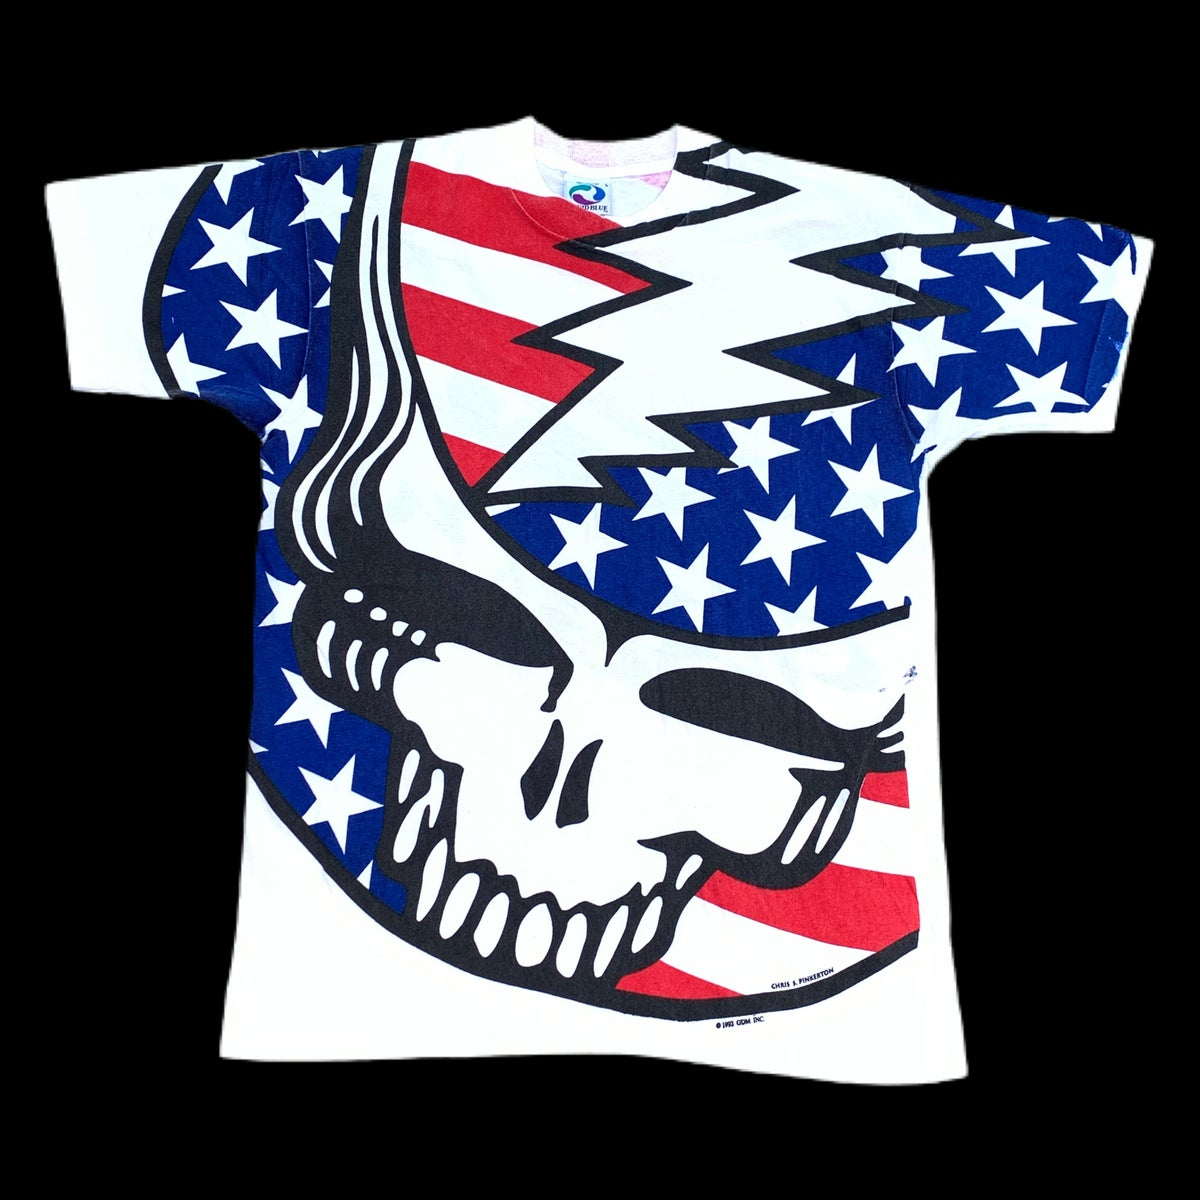 Original Vintage 1990's Grateful Dead American Flag All Over Tee - Large!